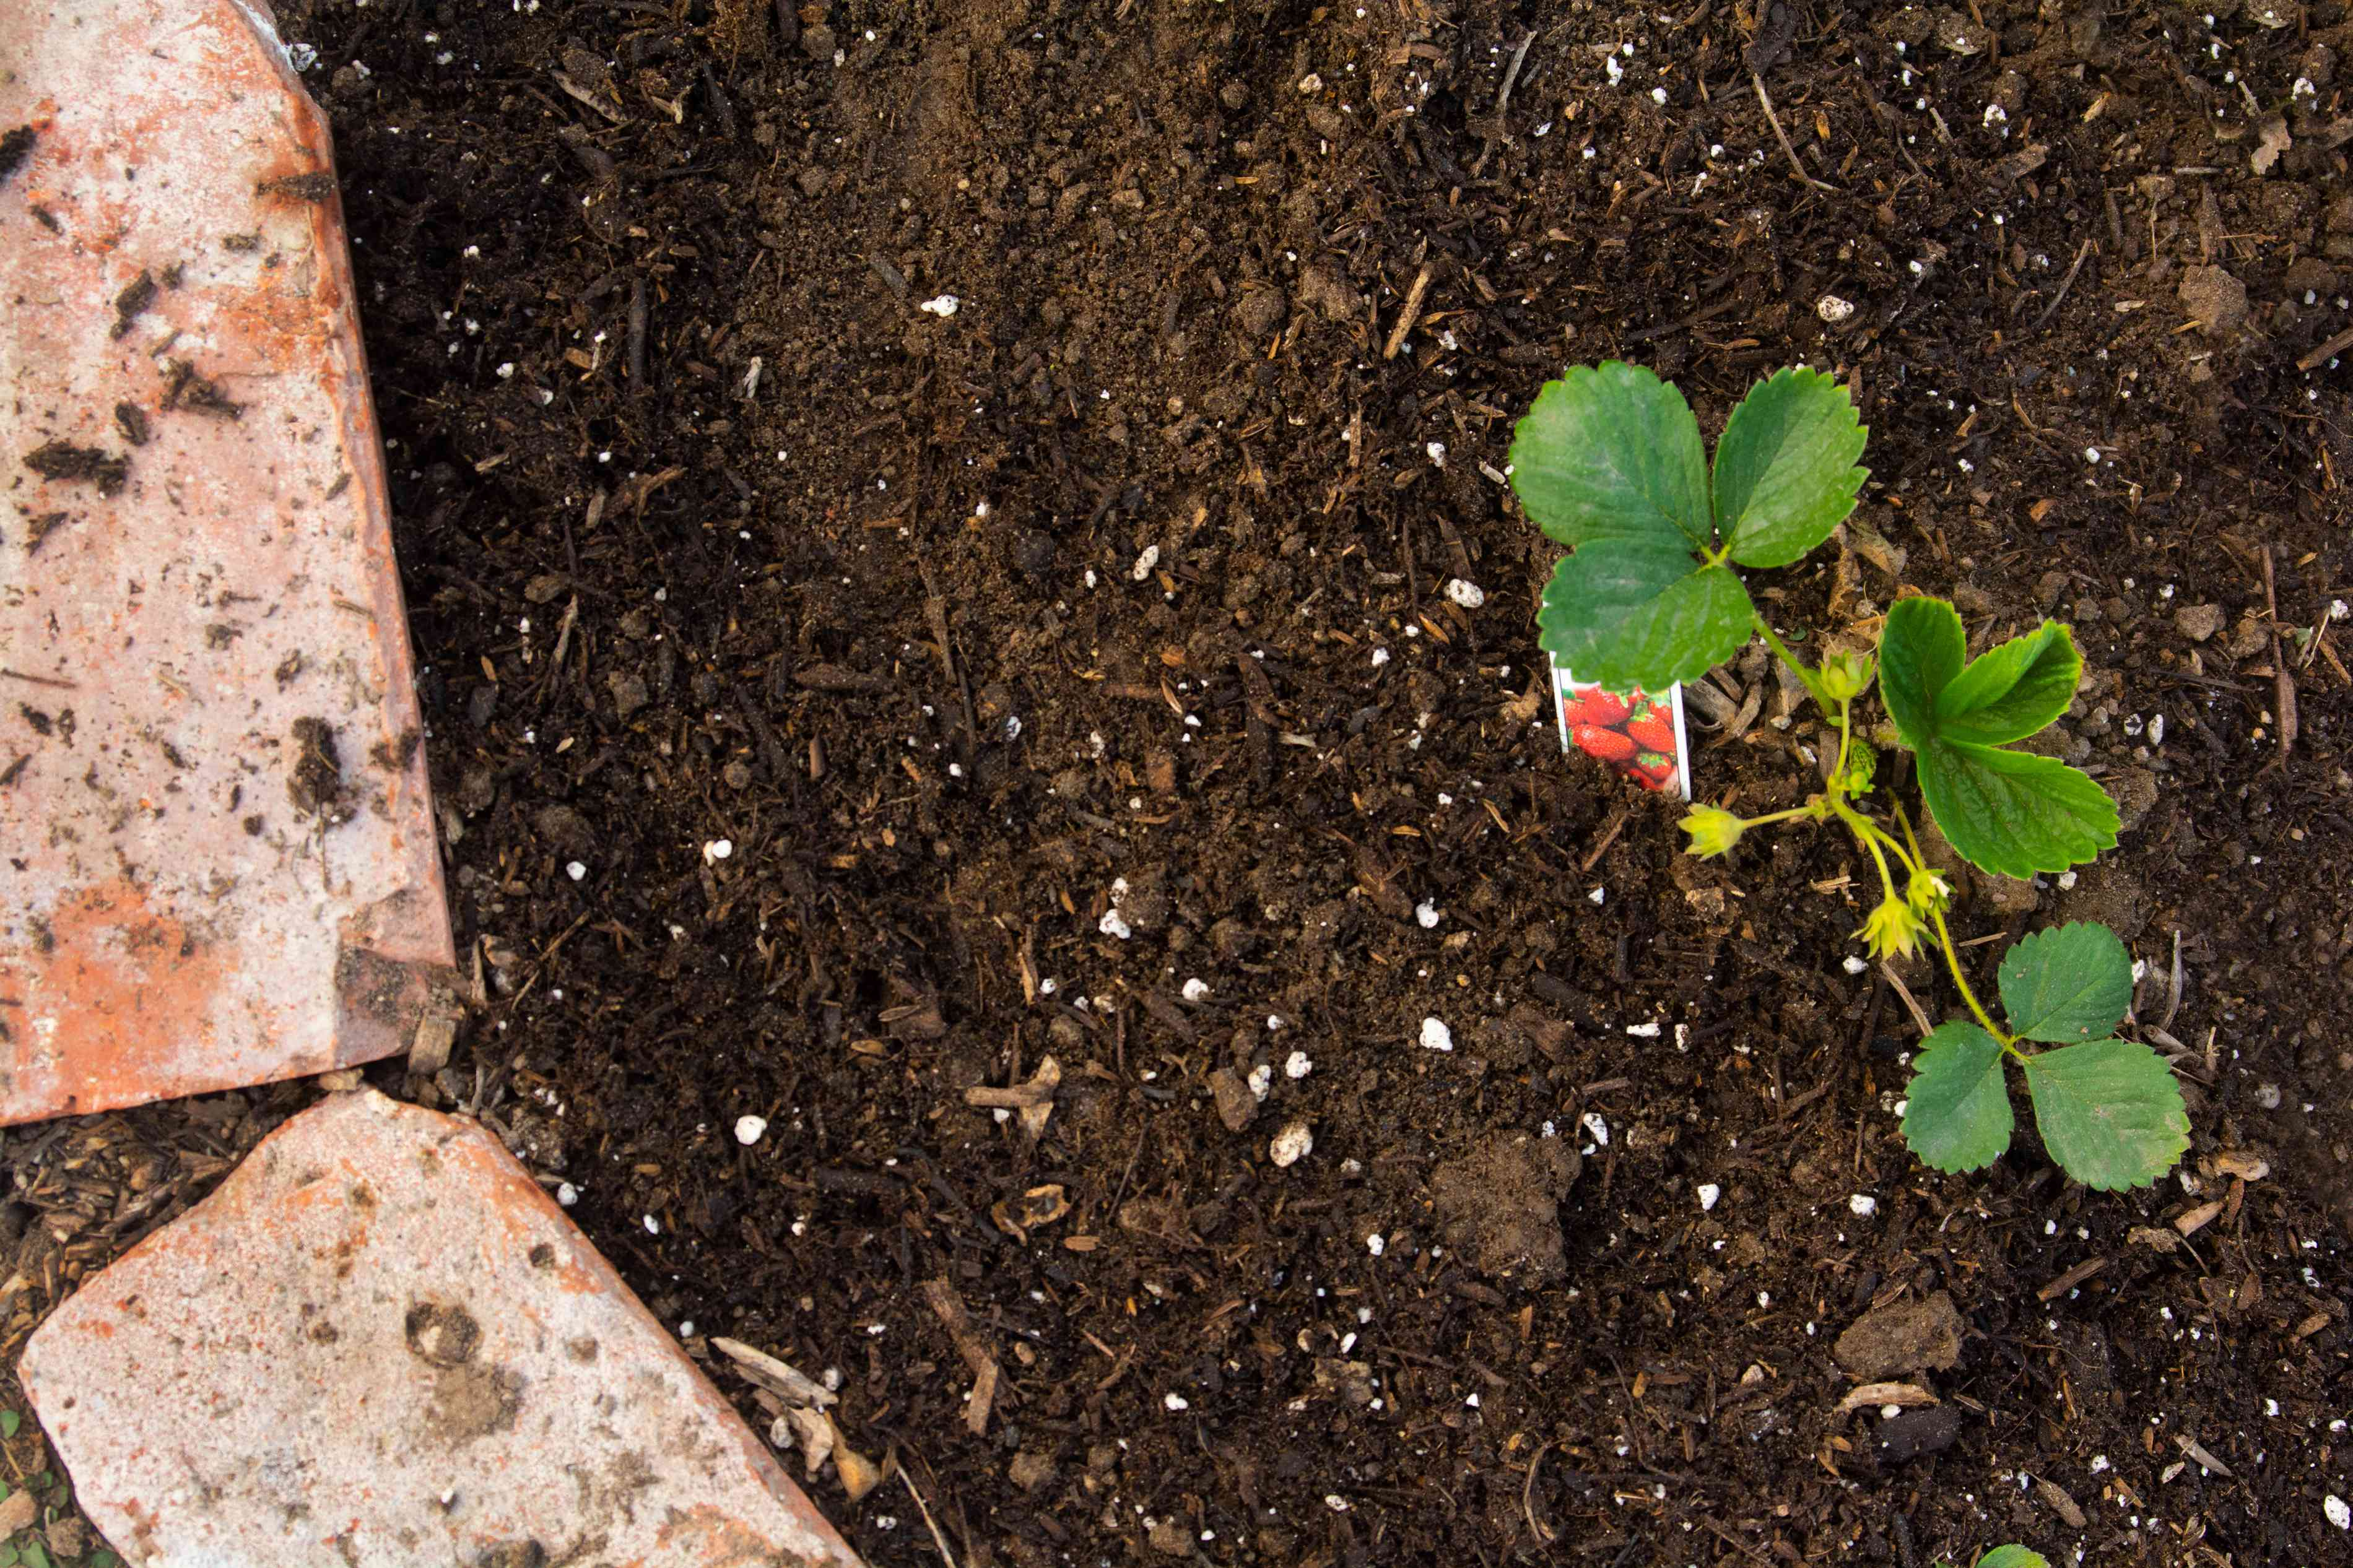 Strawberry plants with yellow buds in soil bed